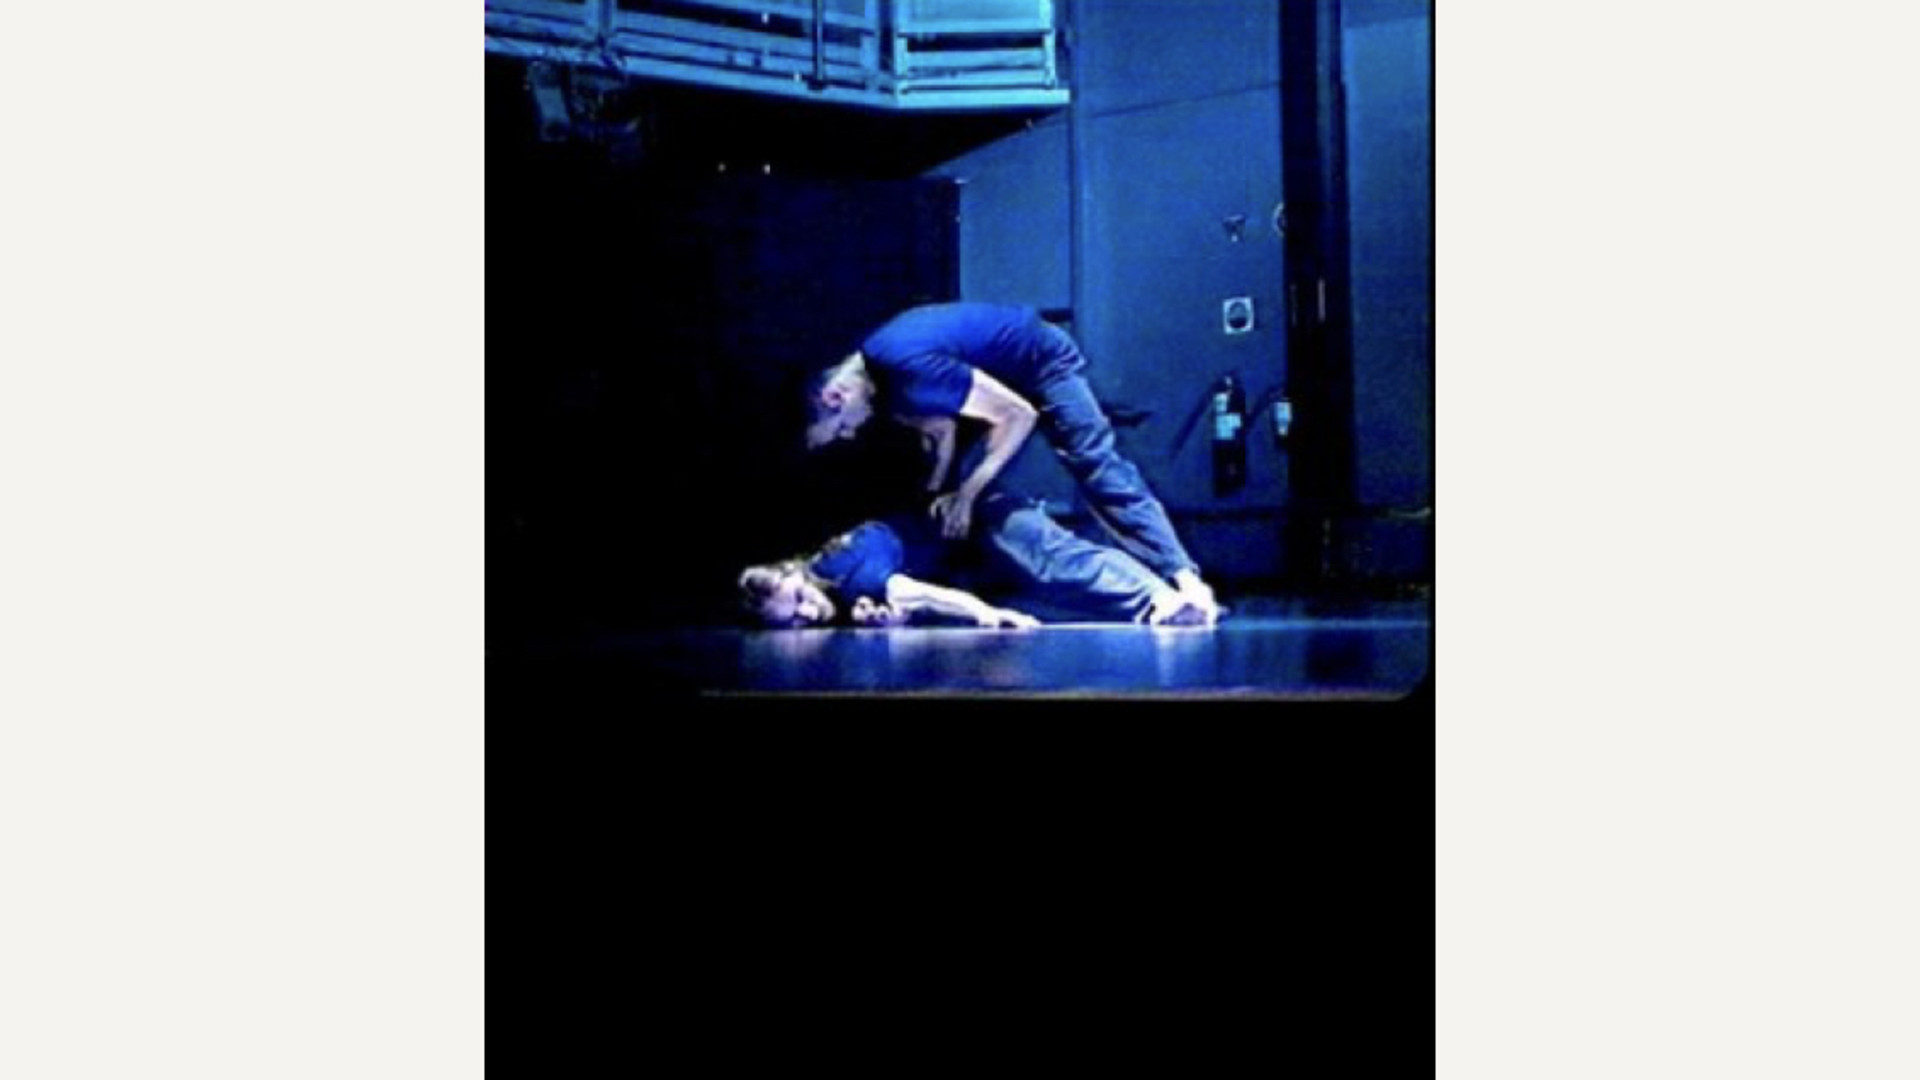 A dancer lunges over another who lies on their front in a blue room with theatre rigging just in view at the top